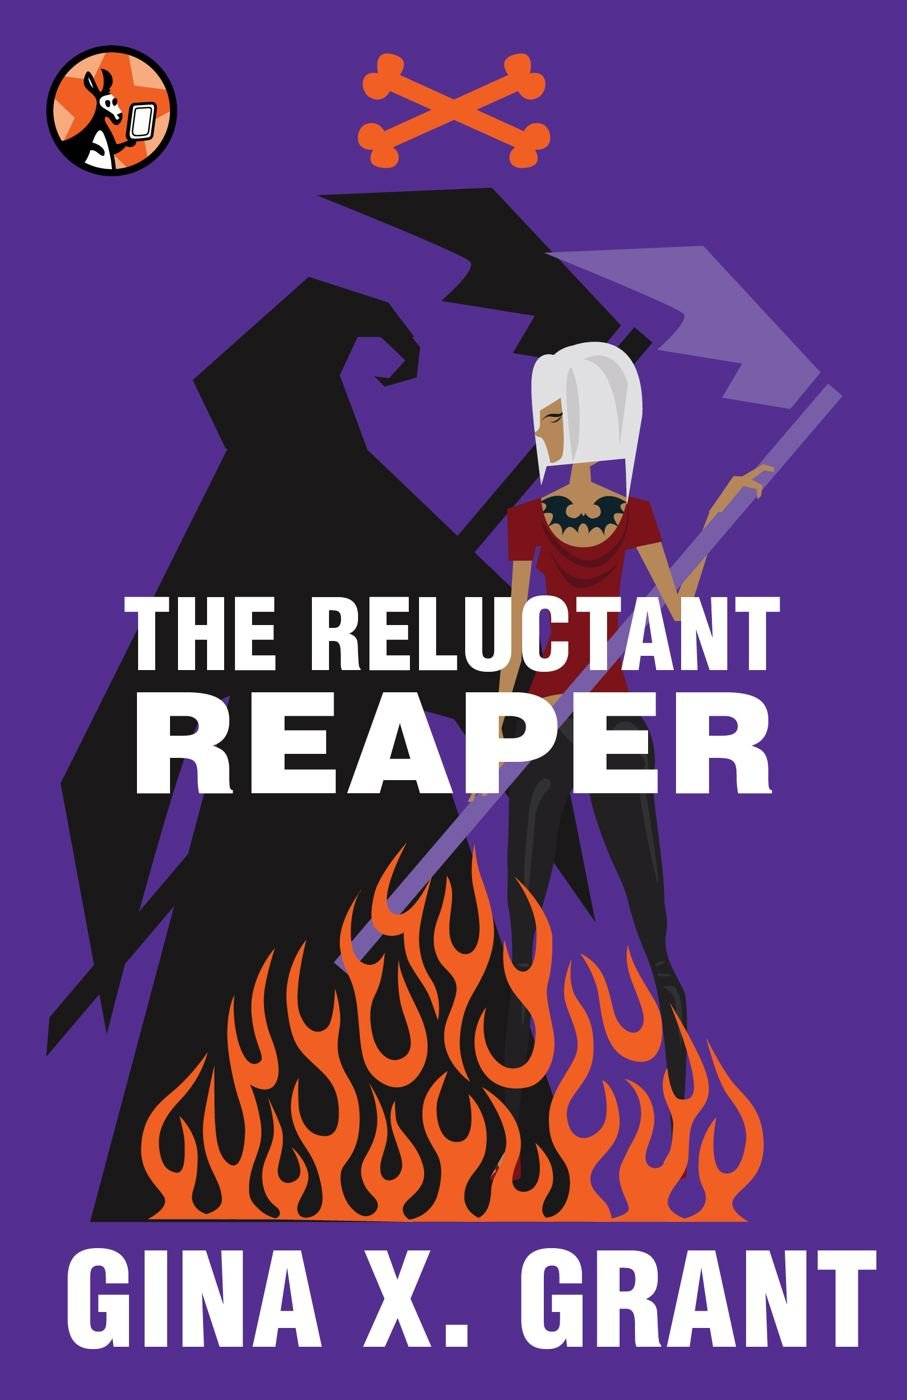 Ten Questions About The Reluctant Reaper, By Gina X. Grant